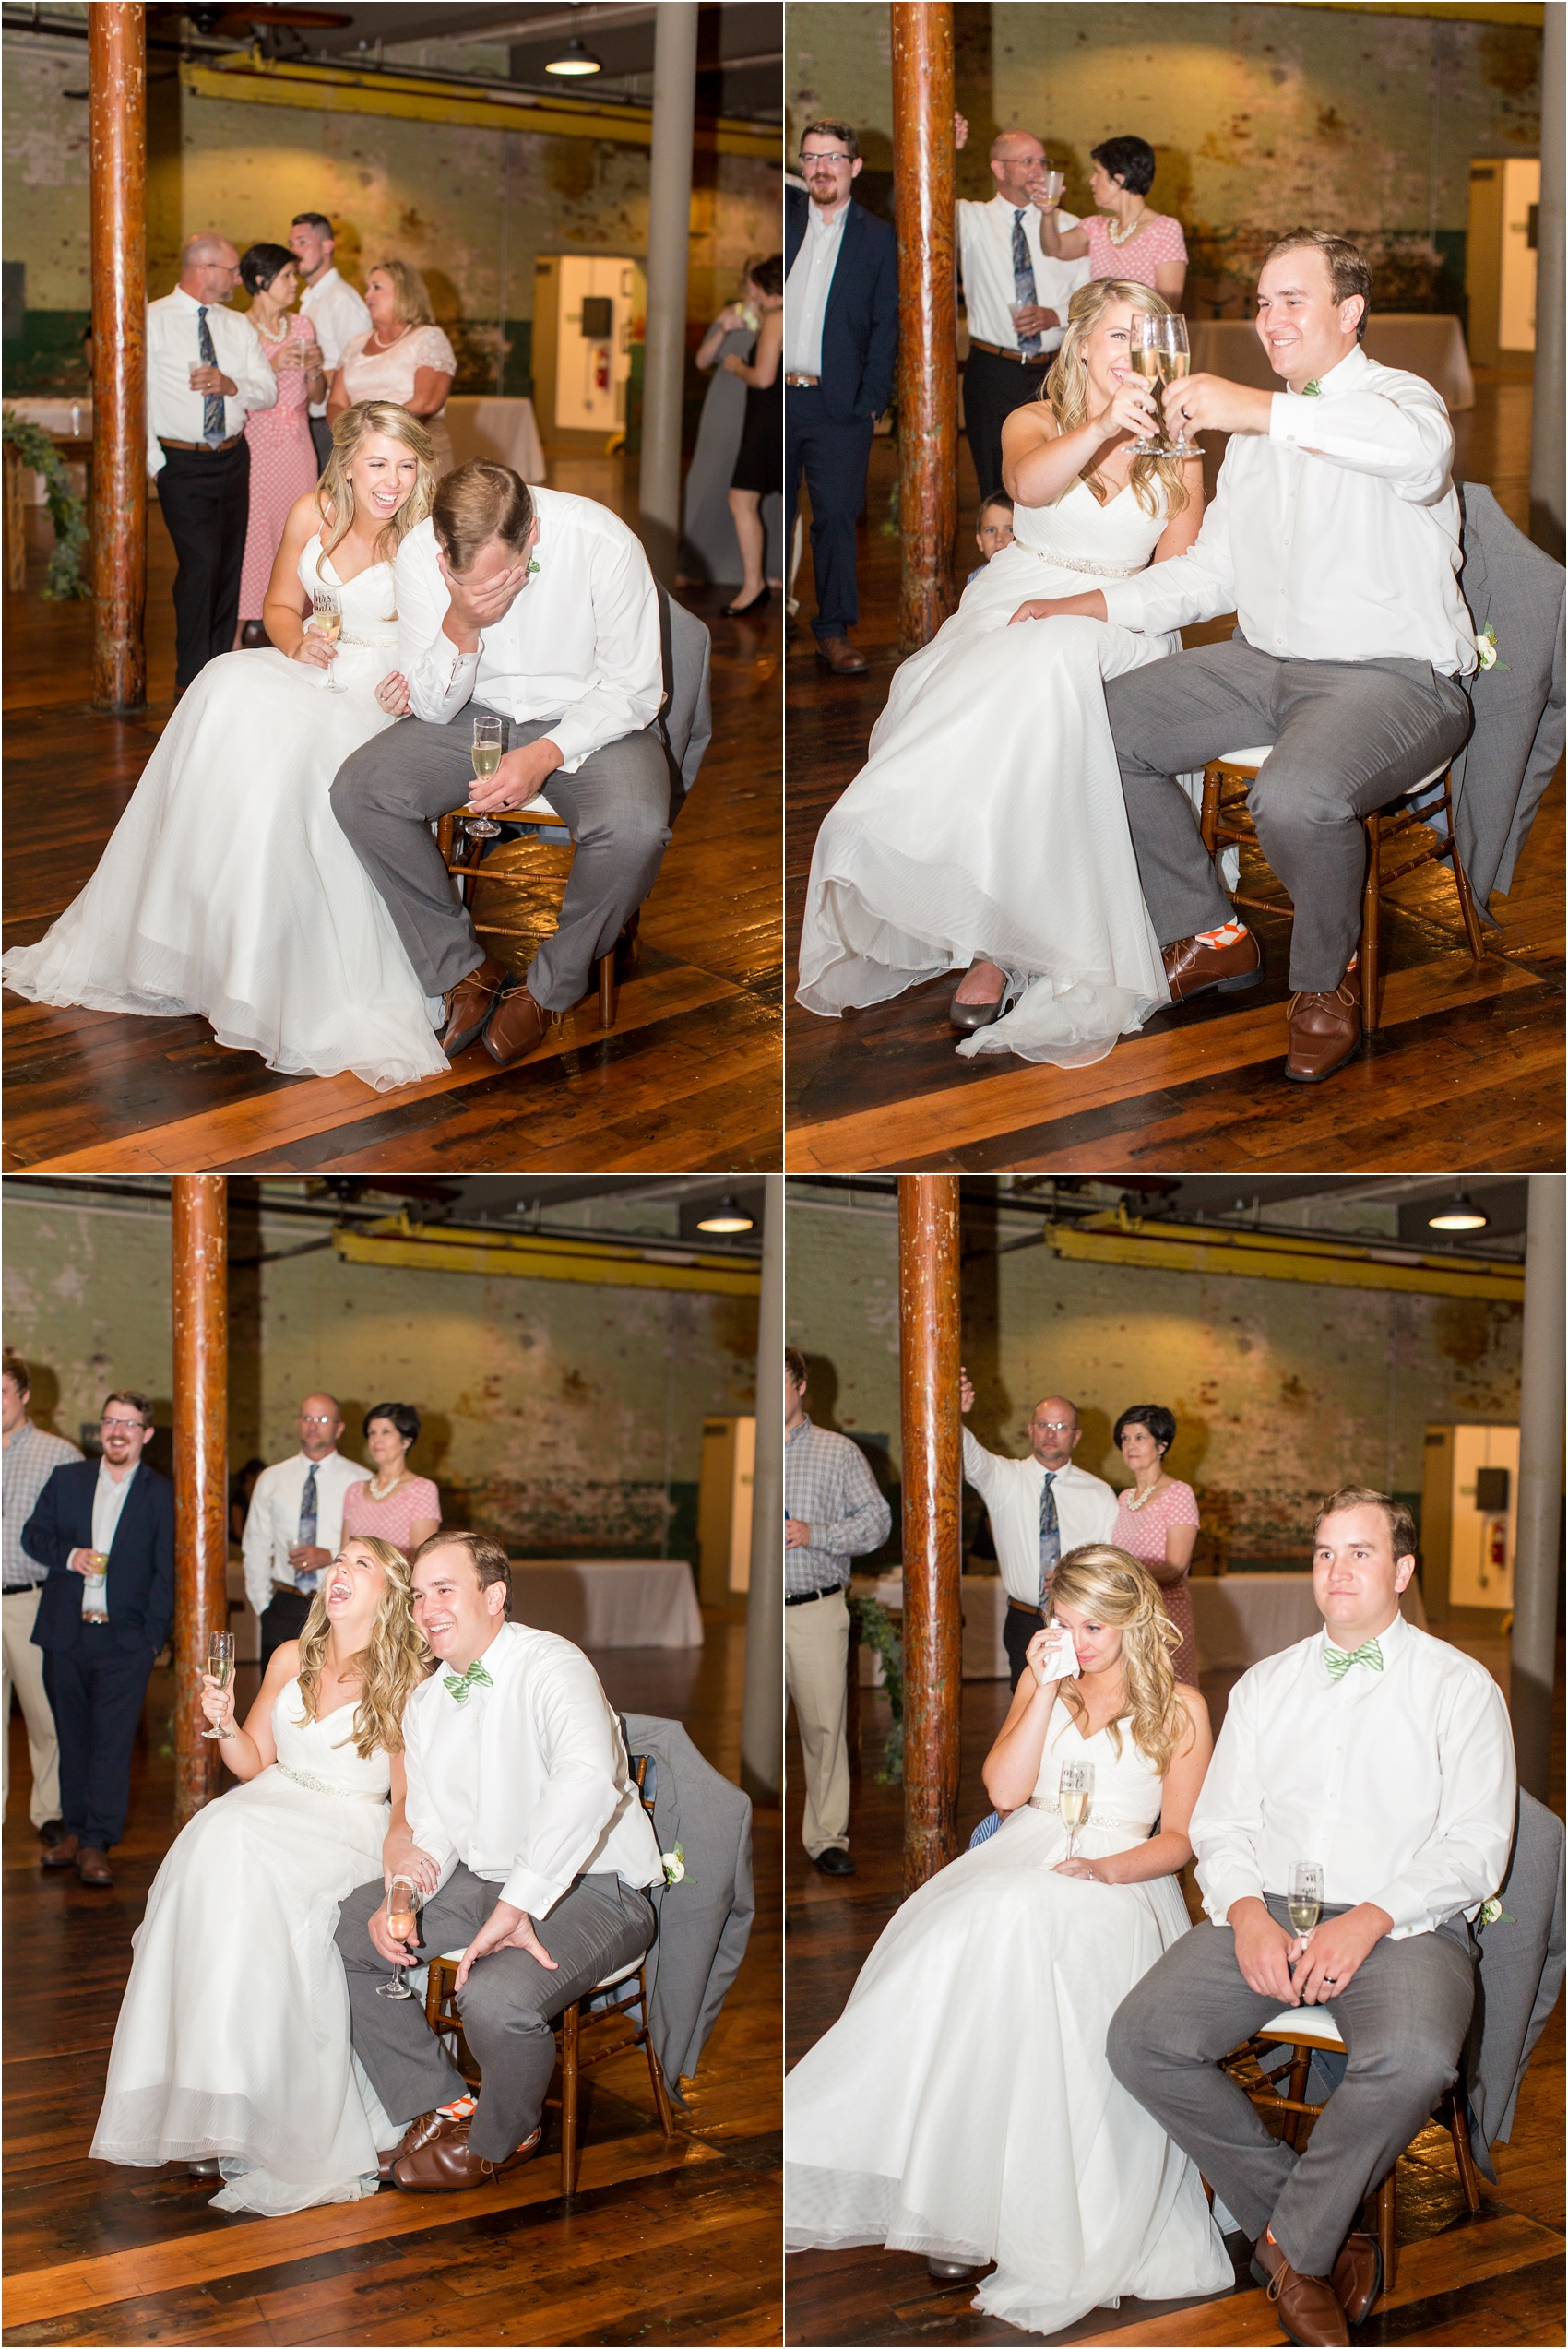 Savannah Eve Photography- Gunter Wedding- Blog-81.jpg